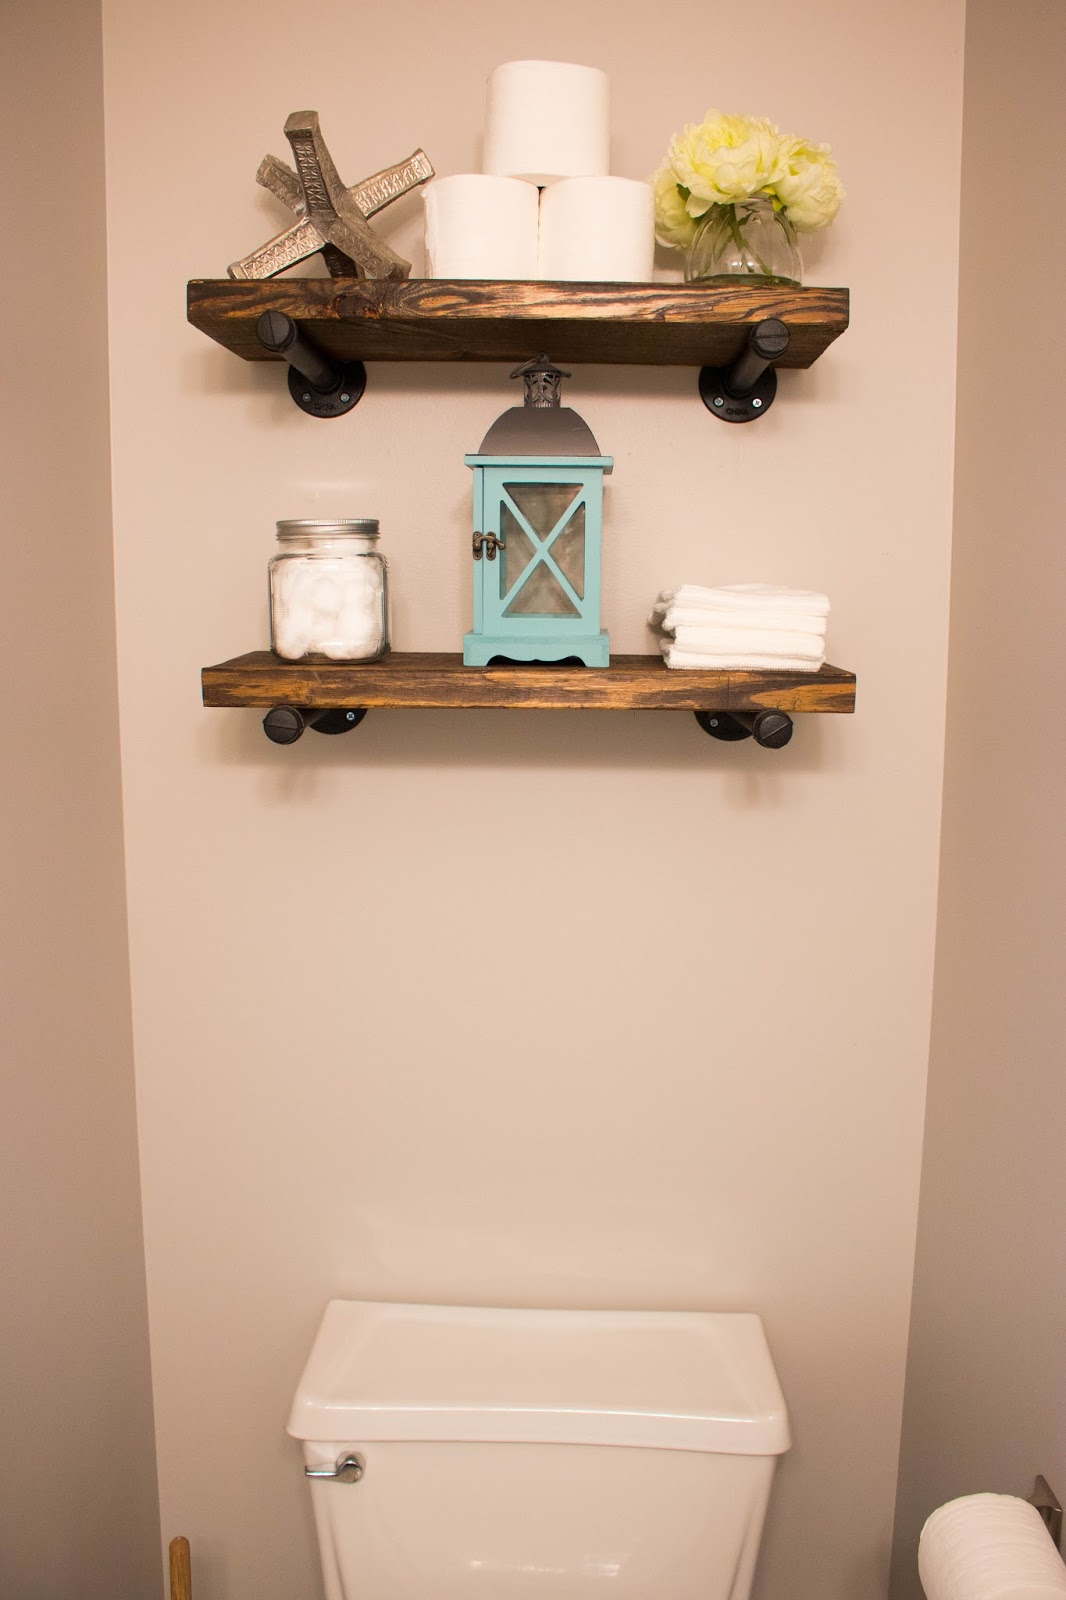 the powder bathroom how make industrial floating shelves img ikea tall shelving unit bookshelf shoe storage book with desk height and depth small portable shelf wrought iron wall